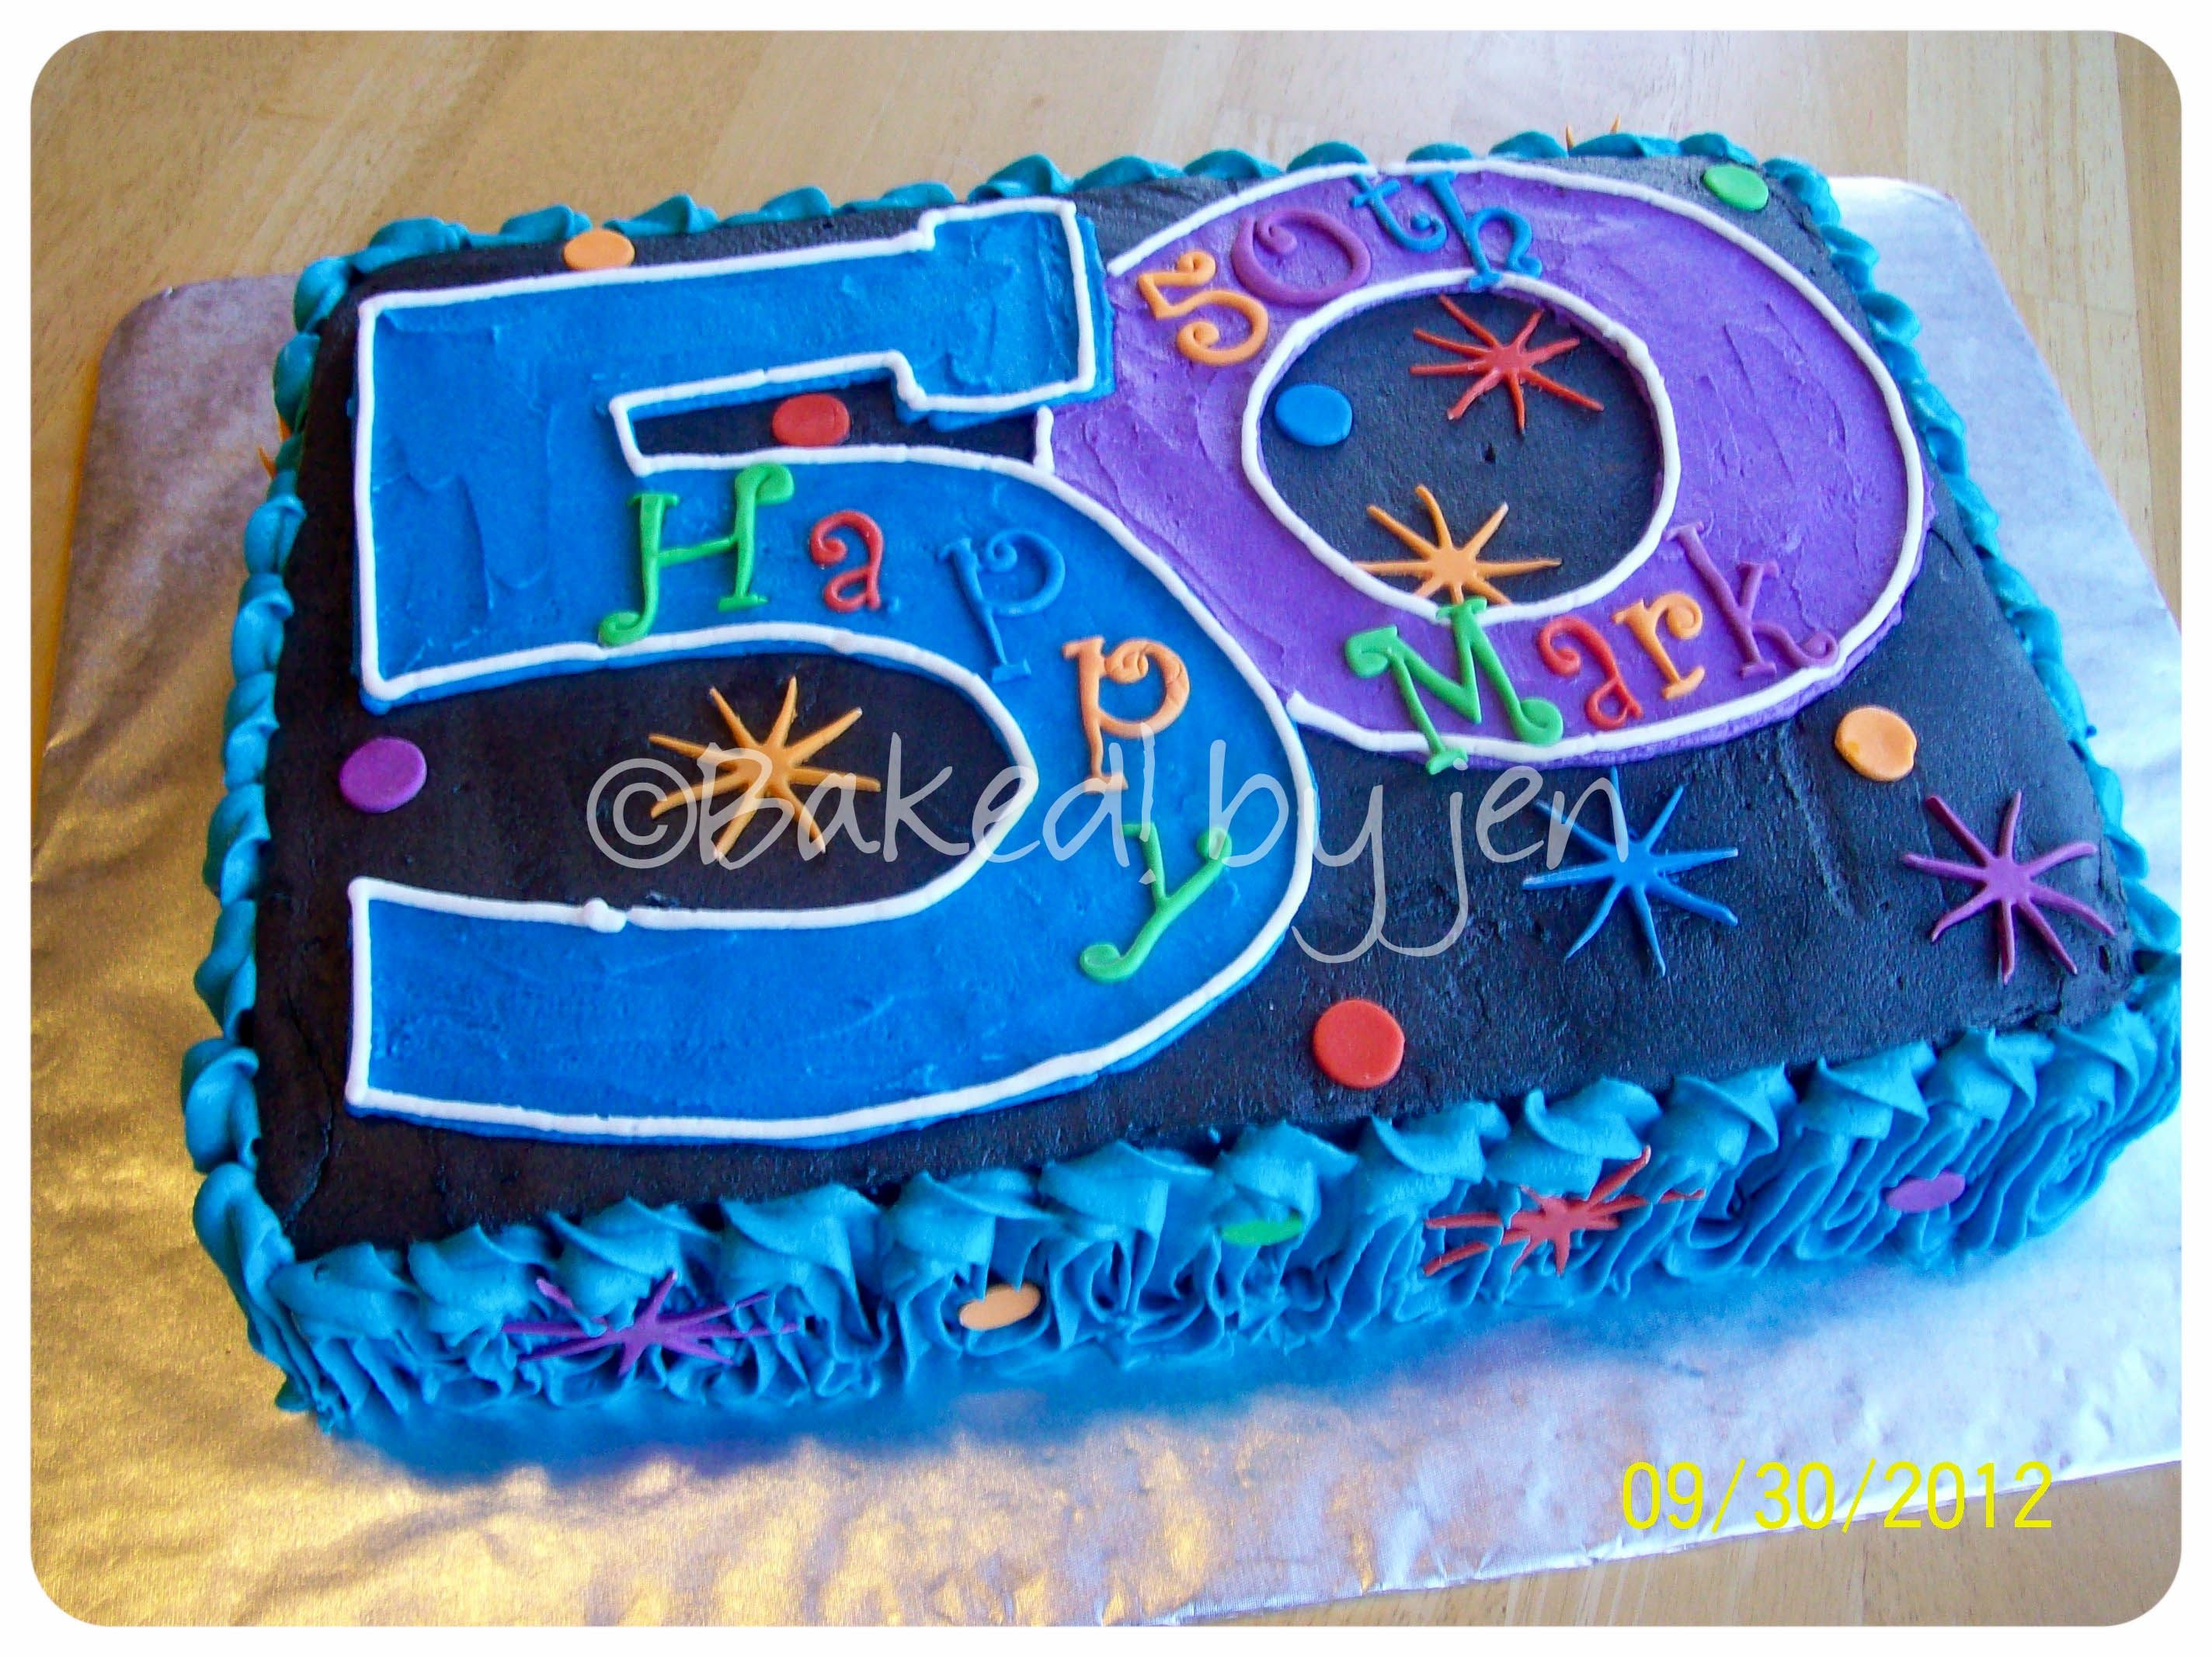 Frases Para Aniversario Cake Ideas And Designs: 9x13-inch Cake For 50th Birthday Party